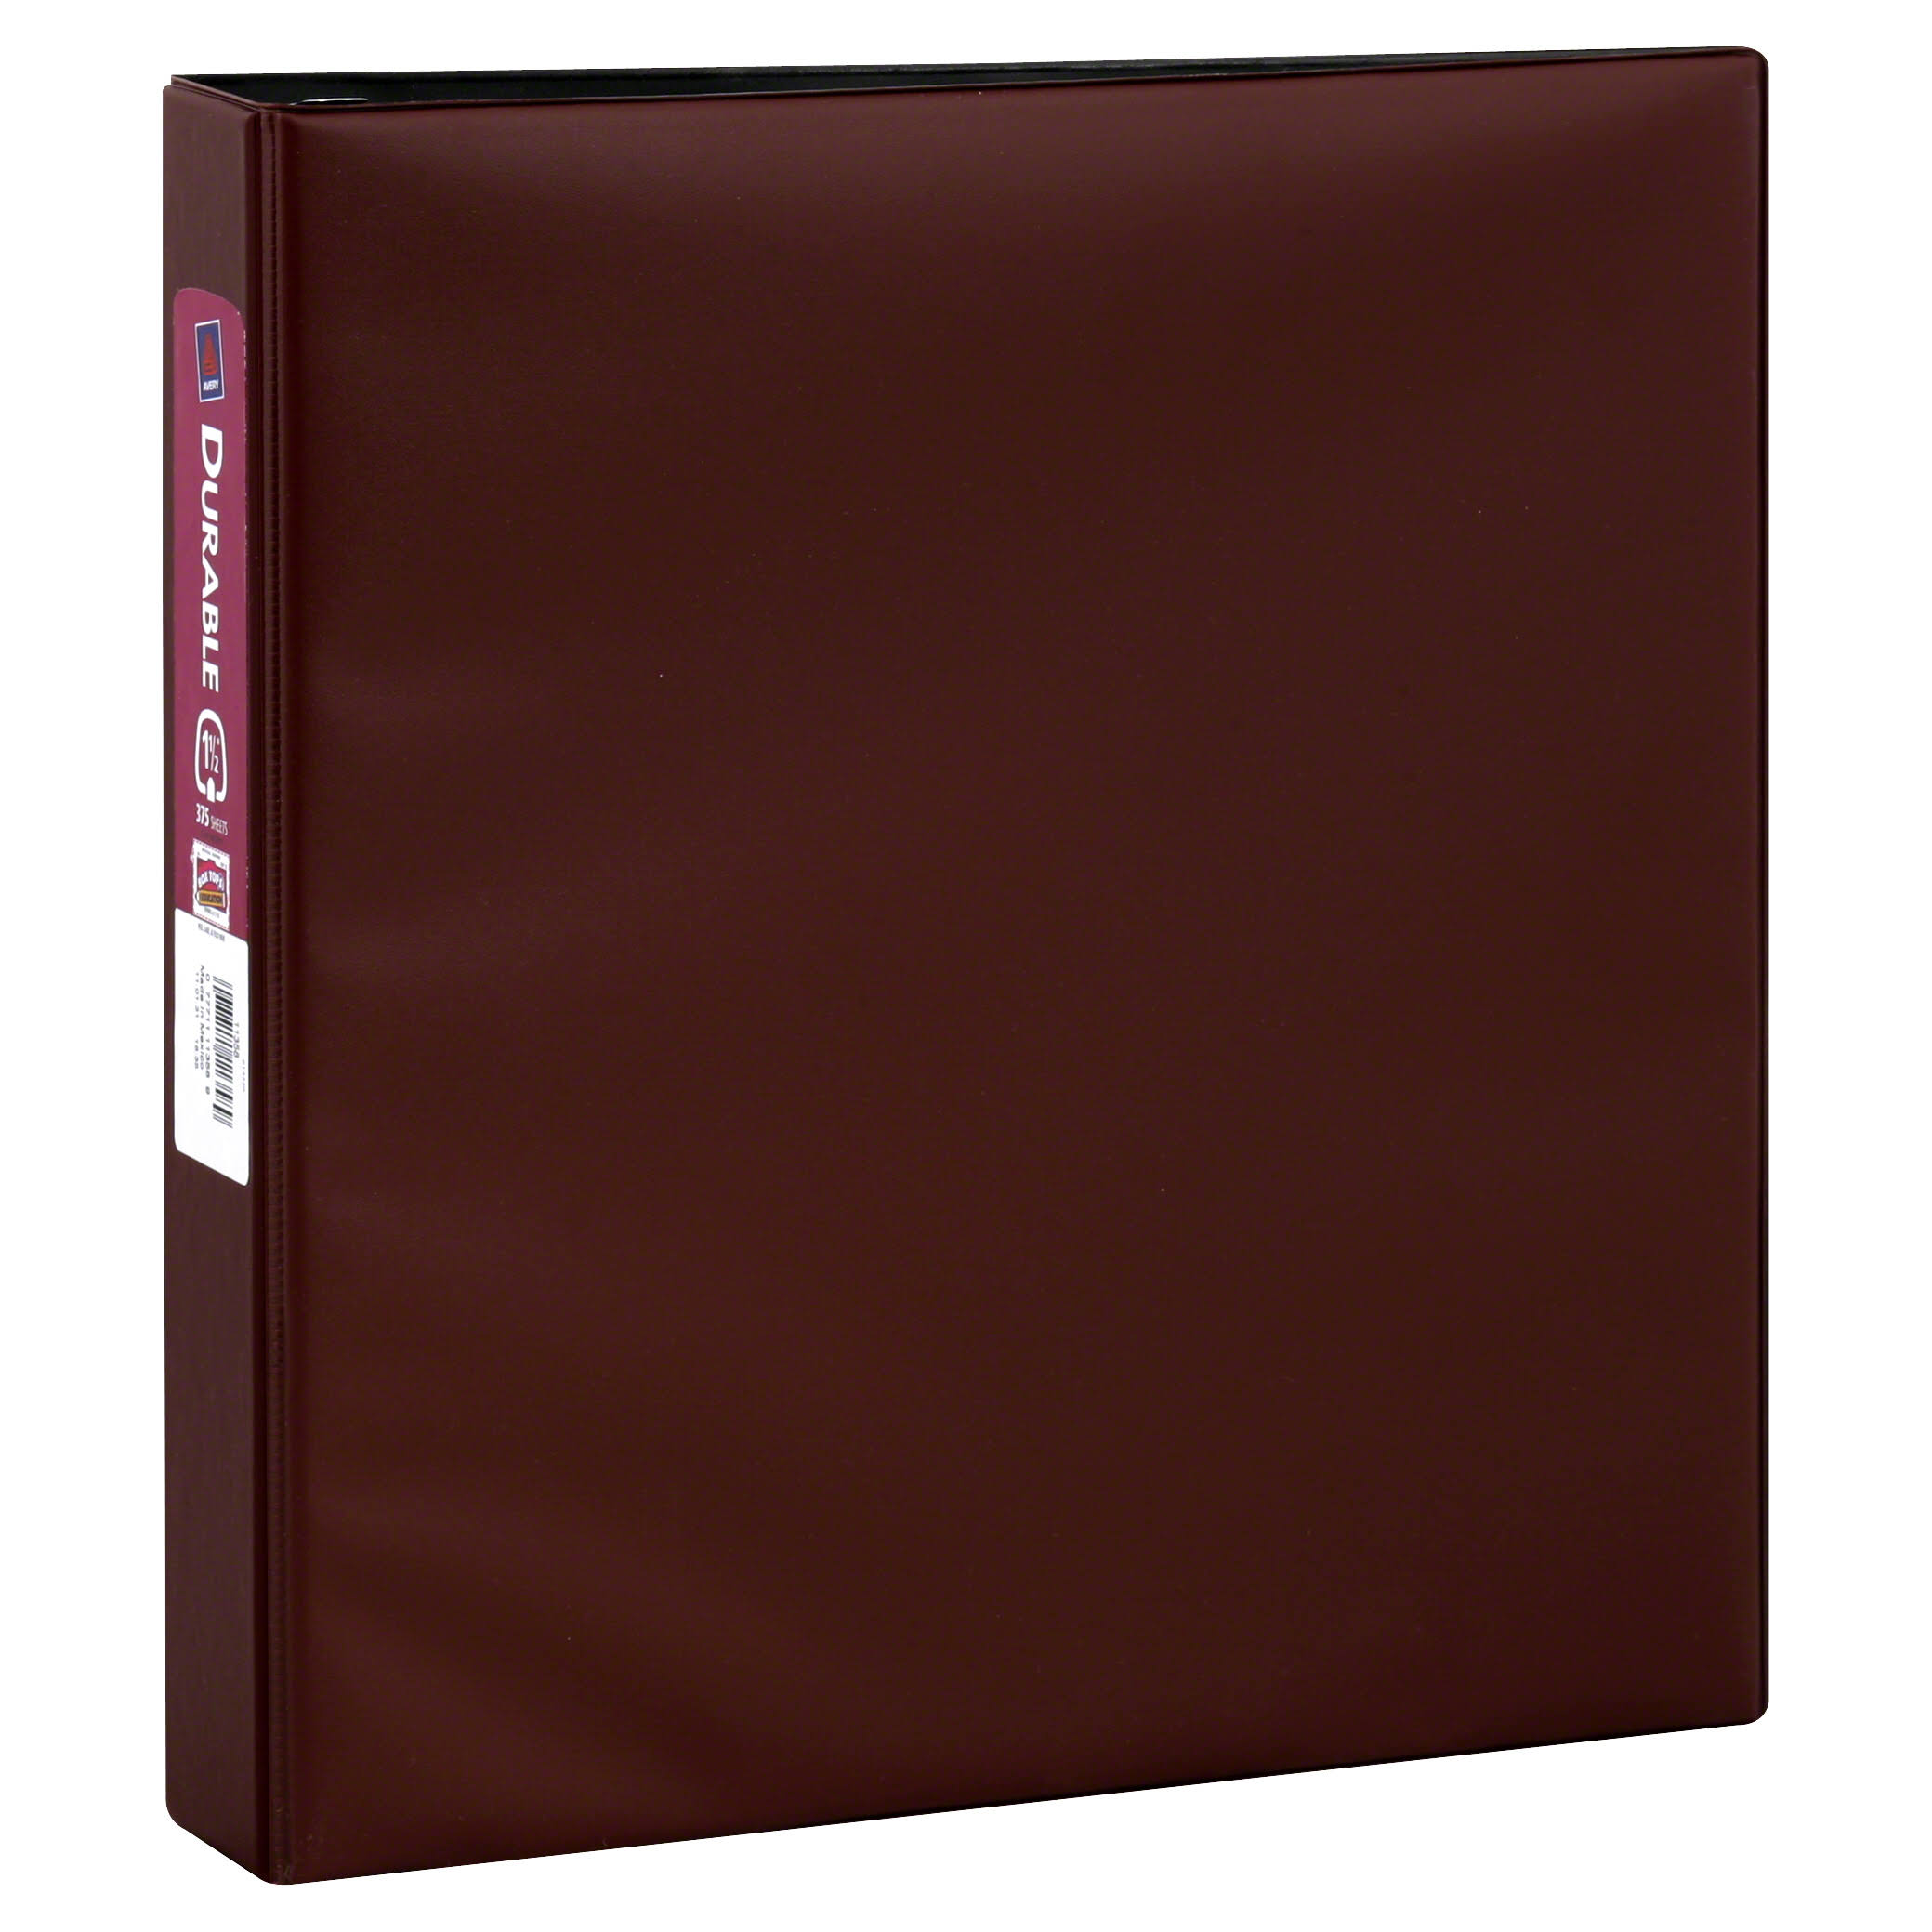 Avery Binder, Durable, 1-1/2 Inch